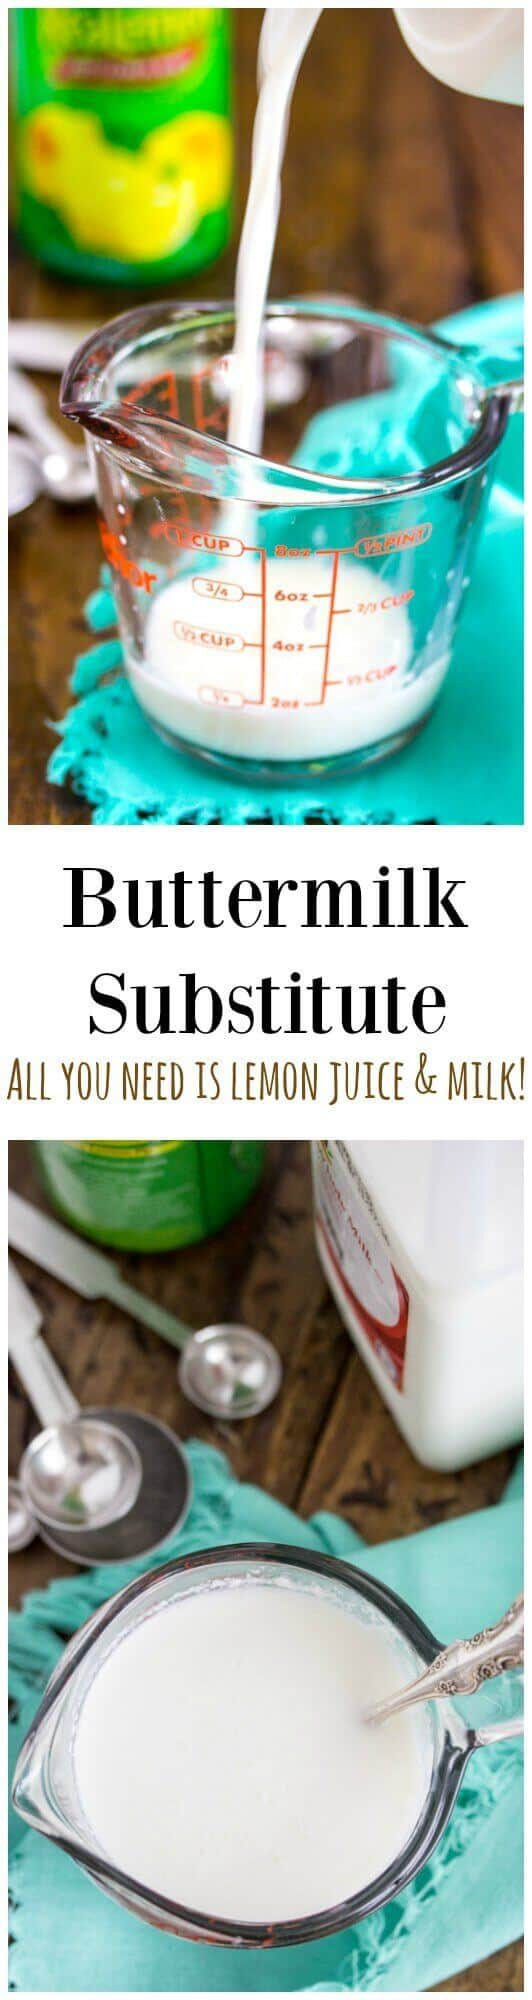 easiest-ever-buttermilk-substitute-all-you-need-is-milk-and-lemon-juice-or-vinegar